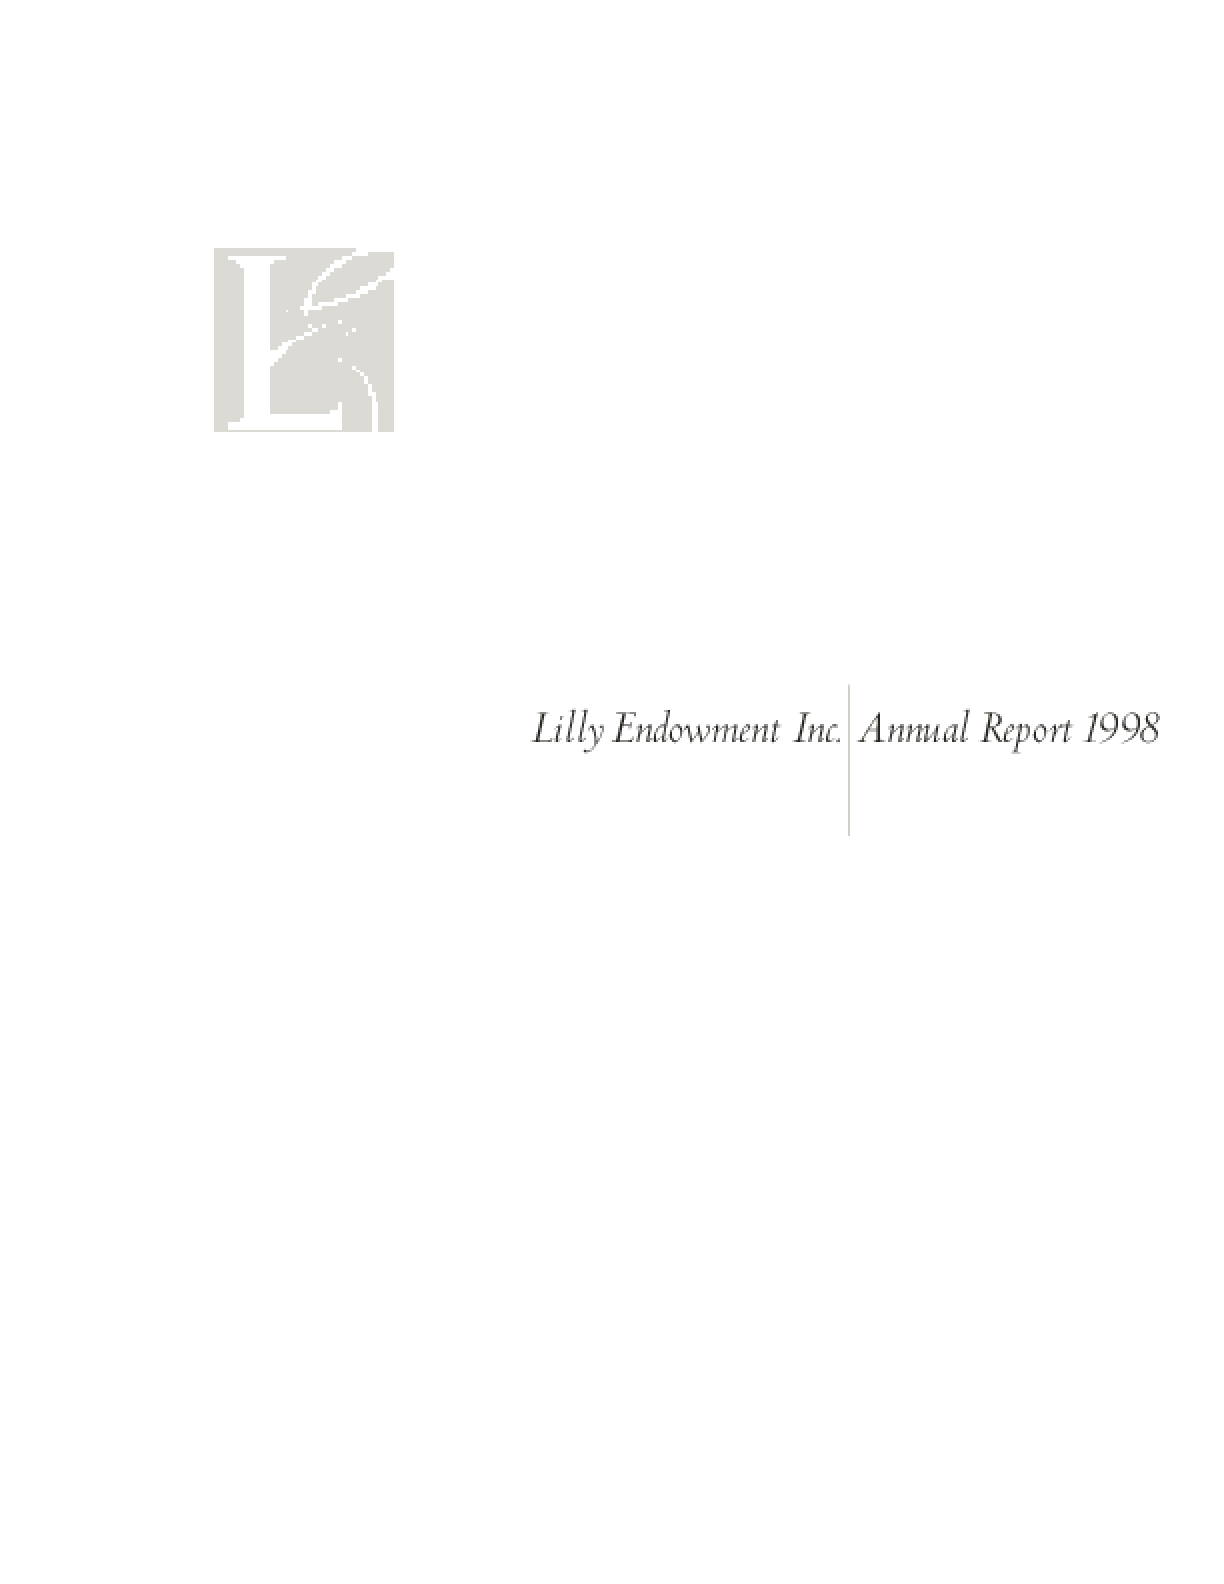 Lilly Endowment Inc. - 1998 Annual Report